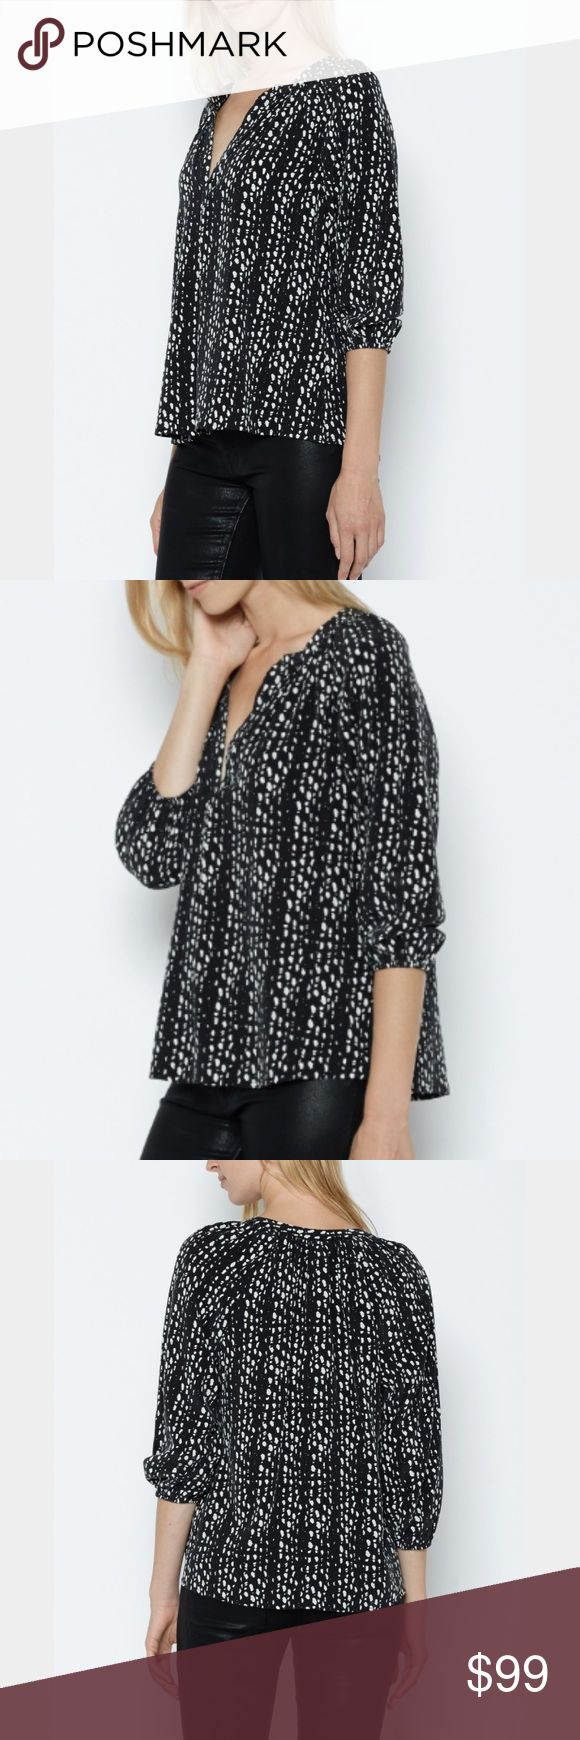 """NWT JOIE ADDIE B SILK BLOUSE BLACK ANIMAL PRINT NEW WITH TAGS JOIE """"ADDIE B"""" 100% SILK ANIMAL PRINT BLOUSE - TOTALLY SOLD OUT                                                     SIZE SMALL                                                           BOUGHT FOR $258 plus tax.                                      100% SILK                                                          STUNNING BLACK AND WHITE CHEETAH PRINT FEATURES A SPLIT V NECK, ELASTIC SLEEVE CUFFS, AND AN INVERTED FRONT PLEAT THAT…"""